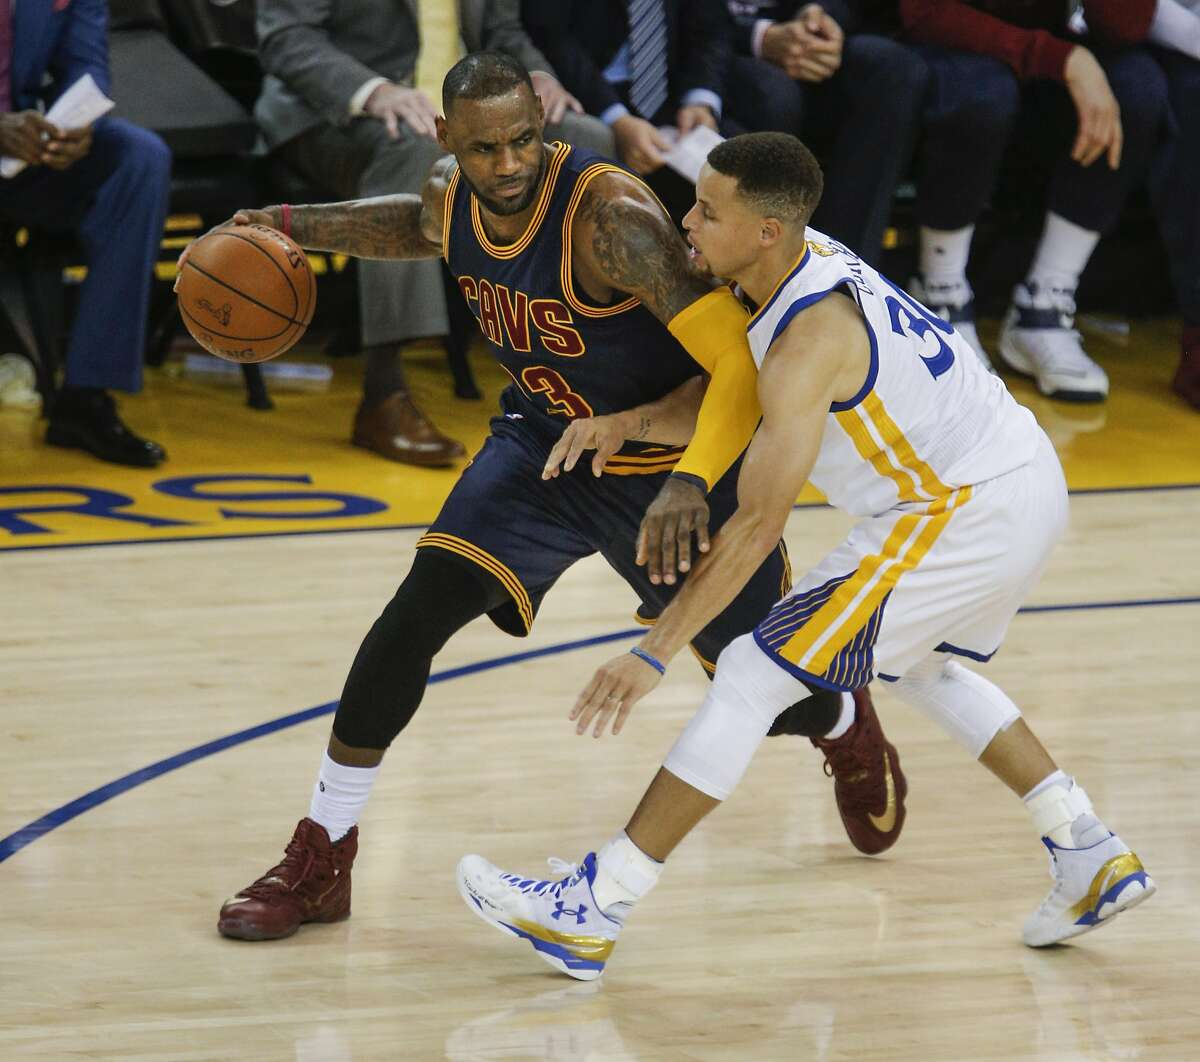 Golden State Warriors' Stephen Curry guards Cleveland Cavaliers' LeBron James in the first quarter during Game 1 of the NBA Finals at Oracle Arena on Thursday, June 2, 2016 in Oakland, Calif.